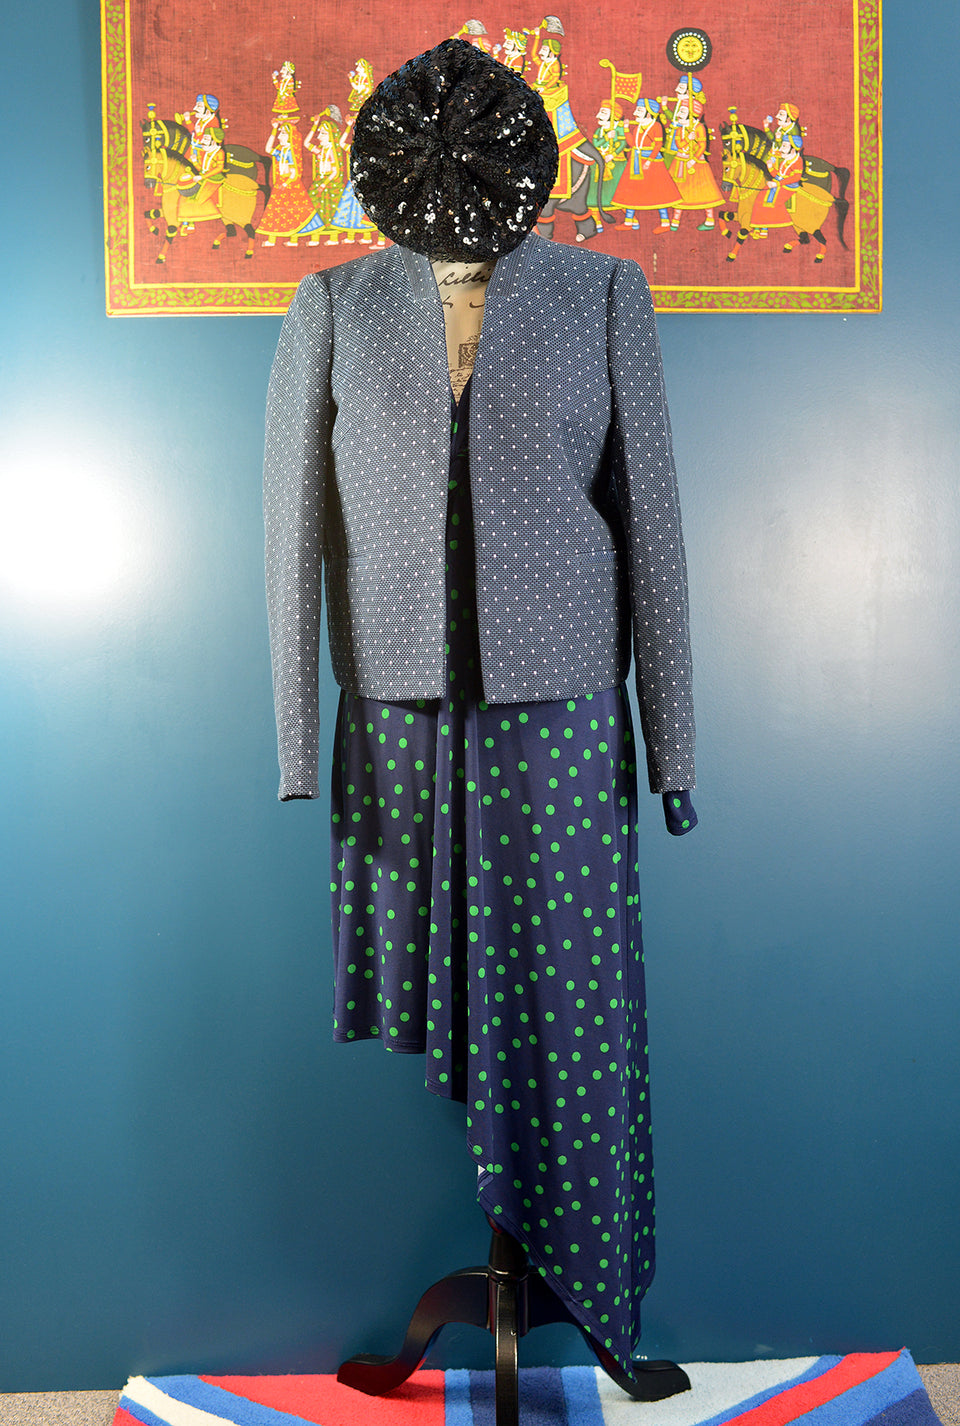 TOPSHOP Women's Navy Polka Dot Jacket, Size 12. New with Tags.